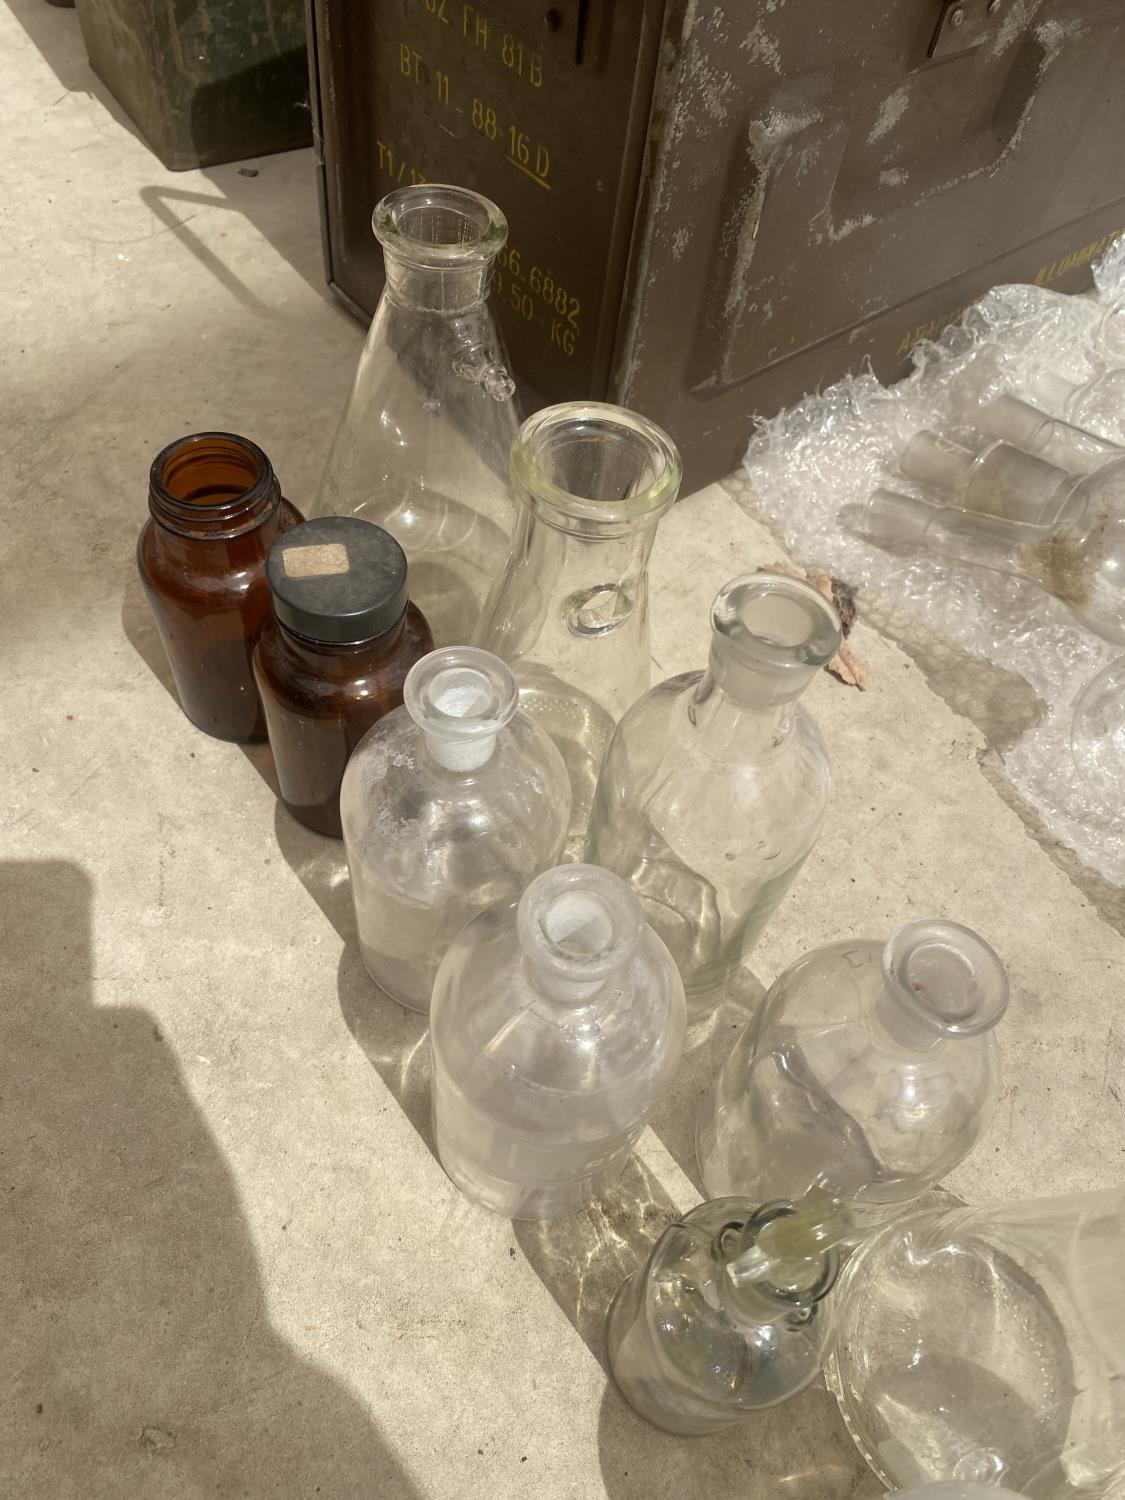 AN ASSORTMENT OF GLASS LAB BOTTLES - Image 2 of 4